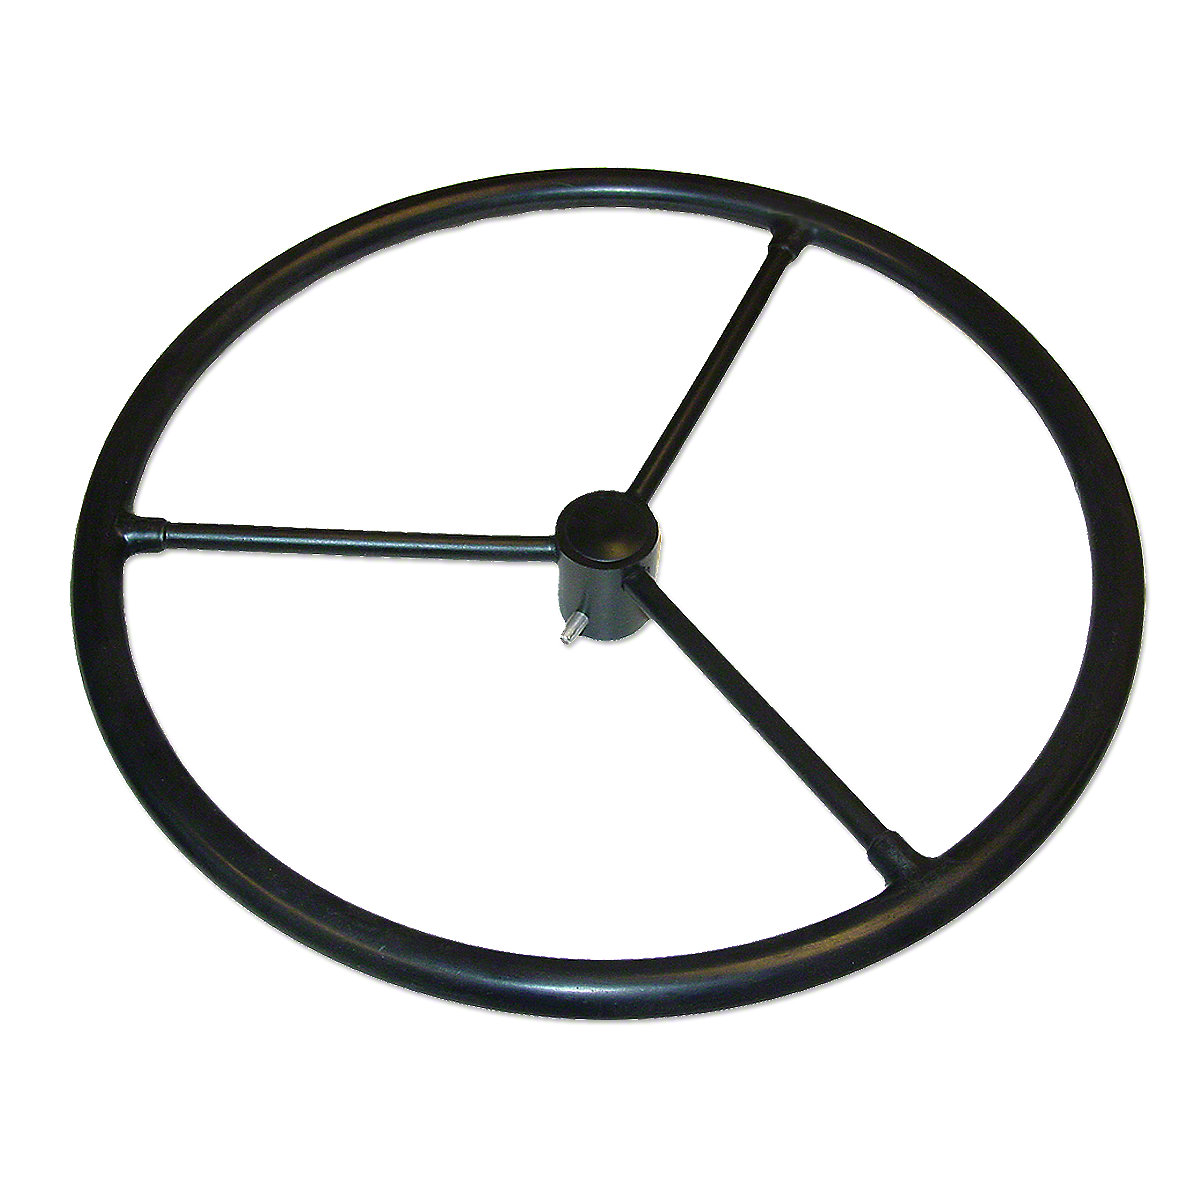 Massey ferguson parts steering wheel for massey harris colt 21 mustang 23 101 101 jr sciox Choice Image